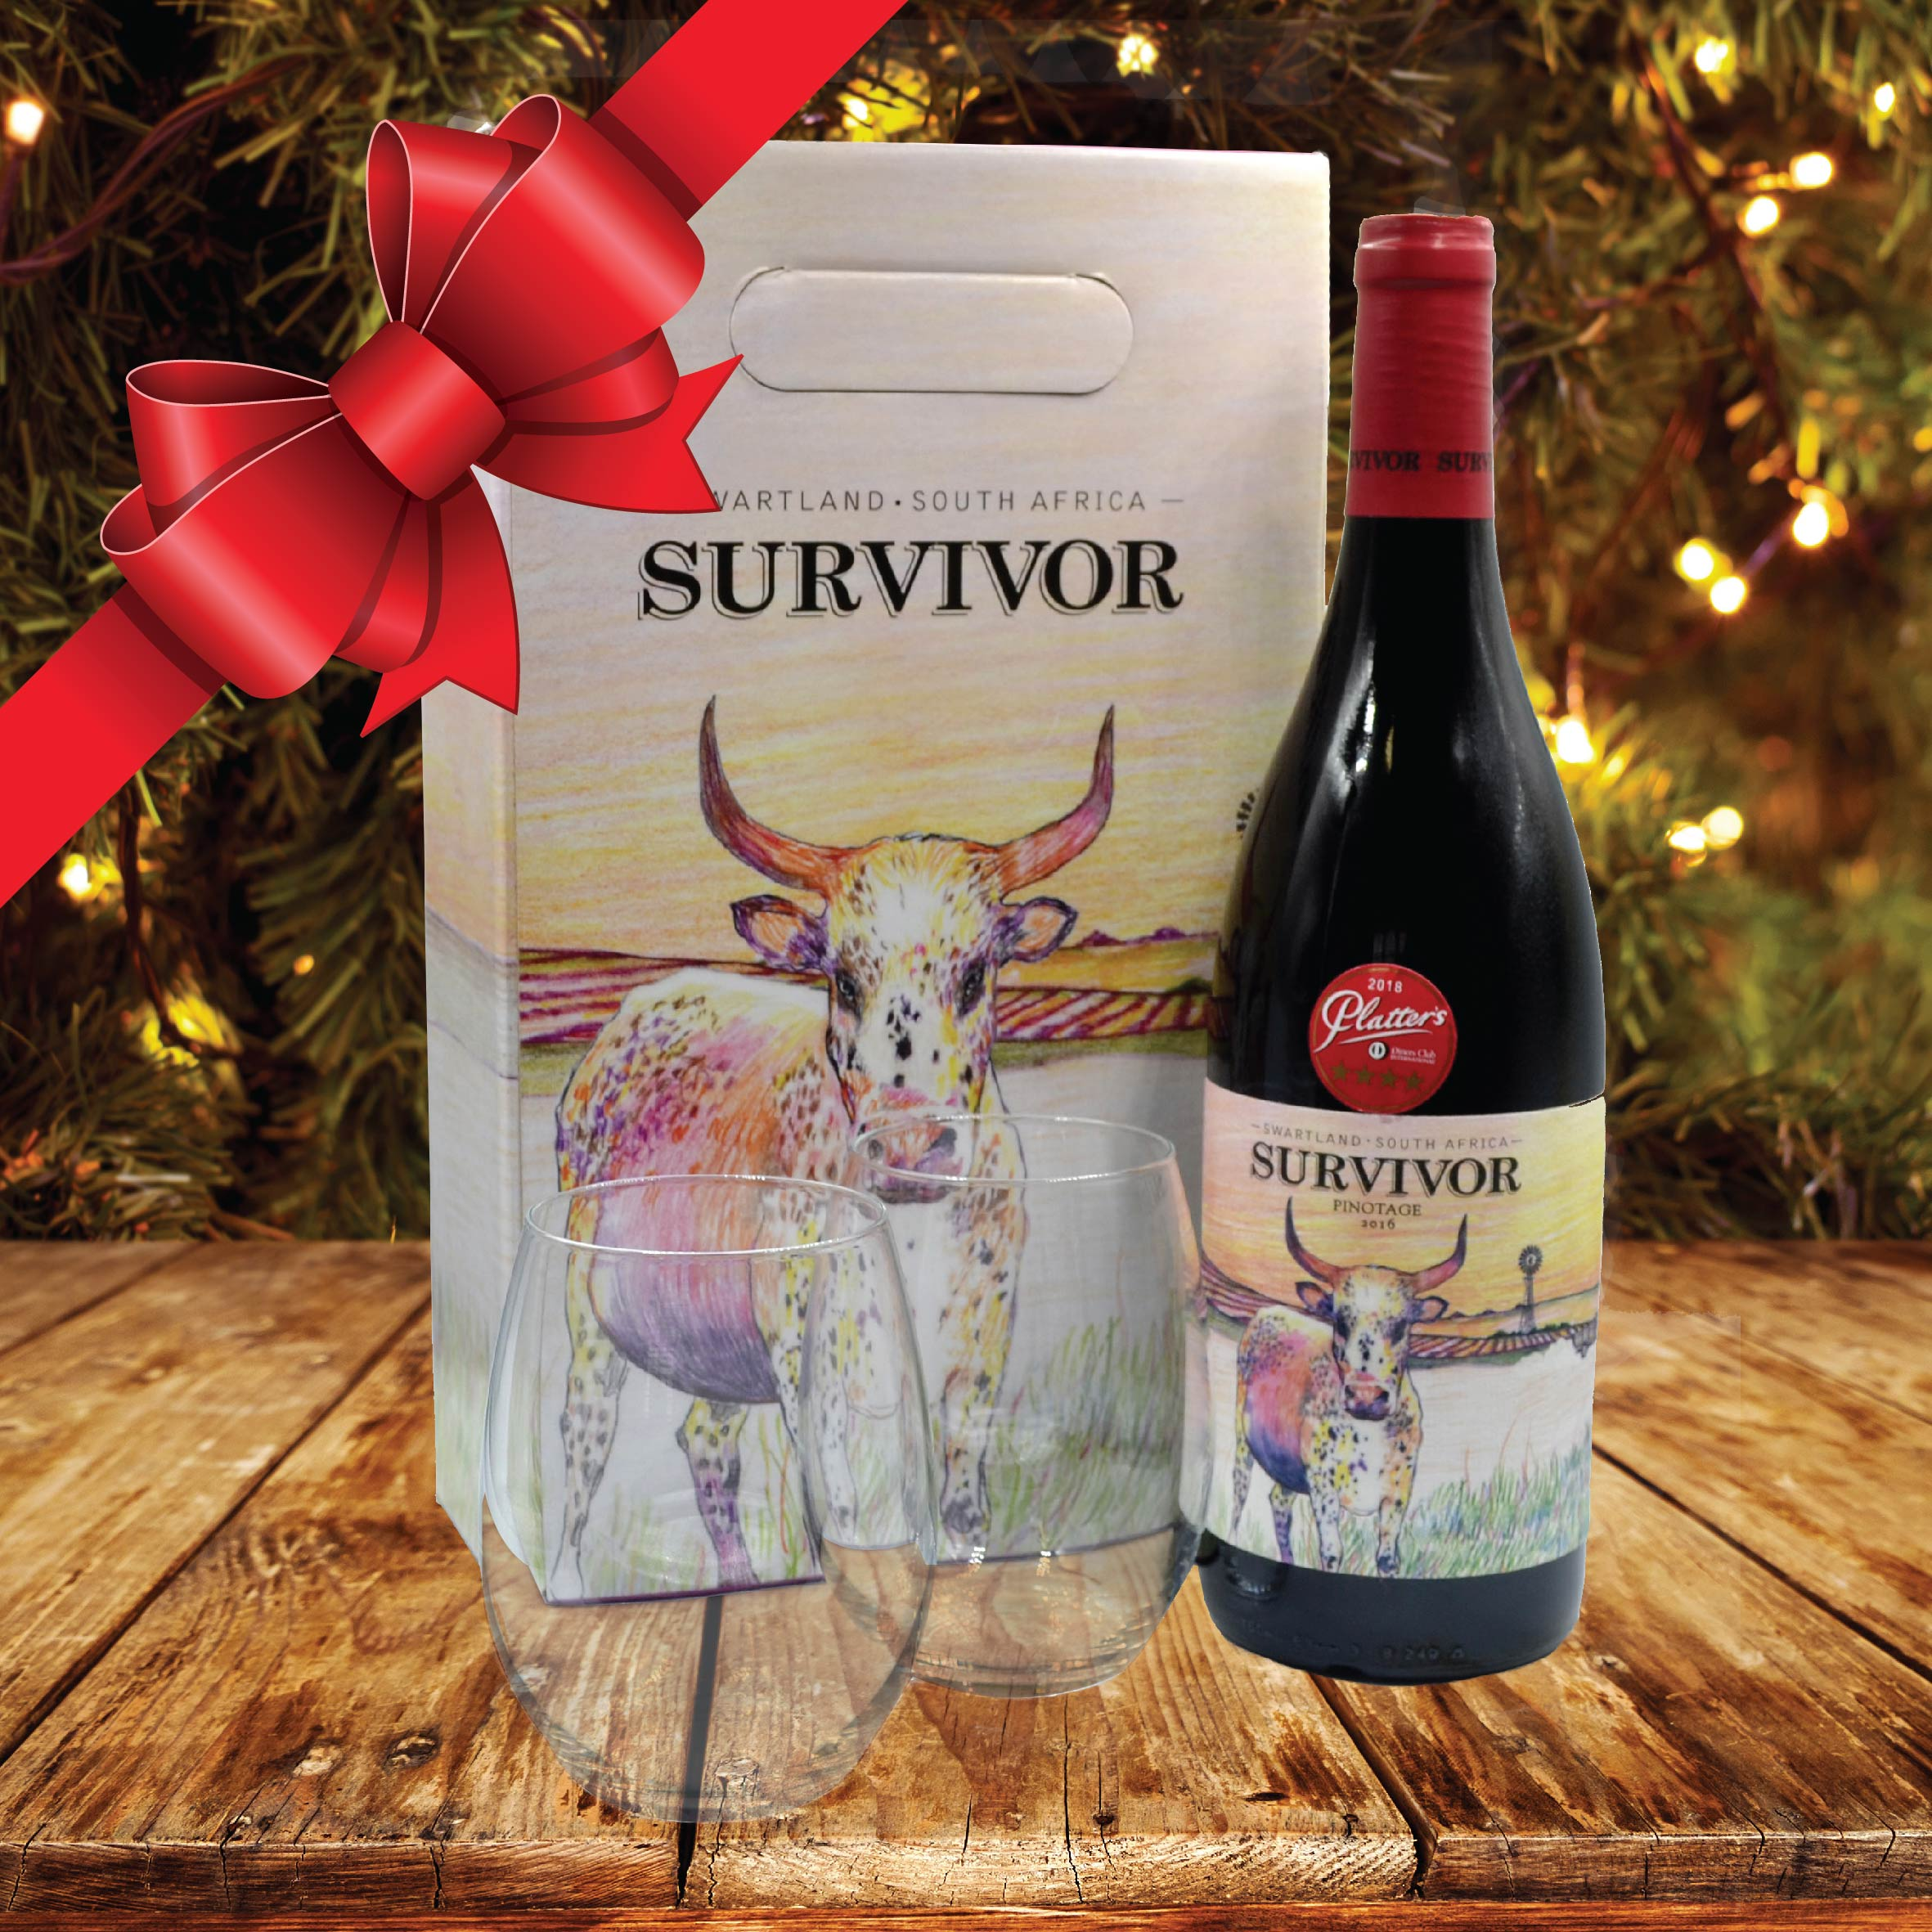 Survivor Pinotage gift pack comes to the rescue at Makro